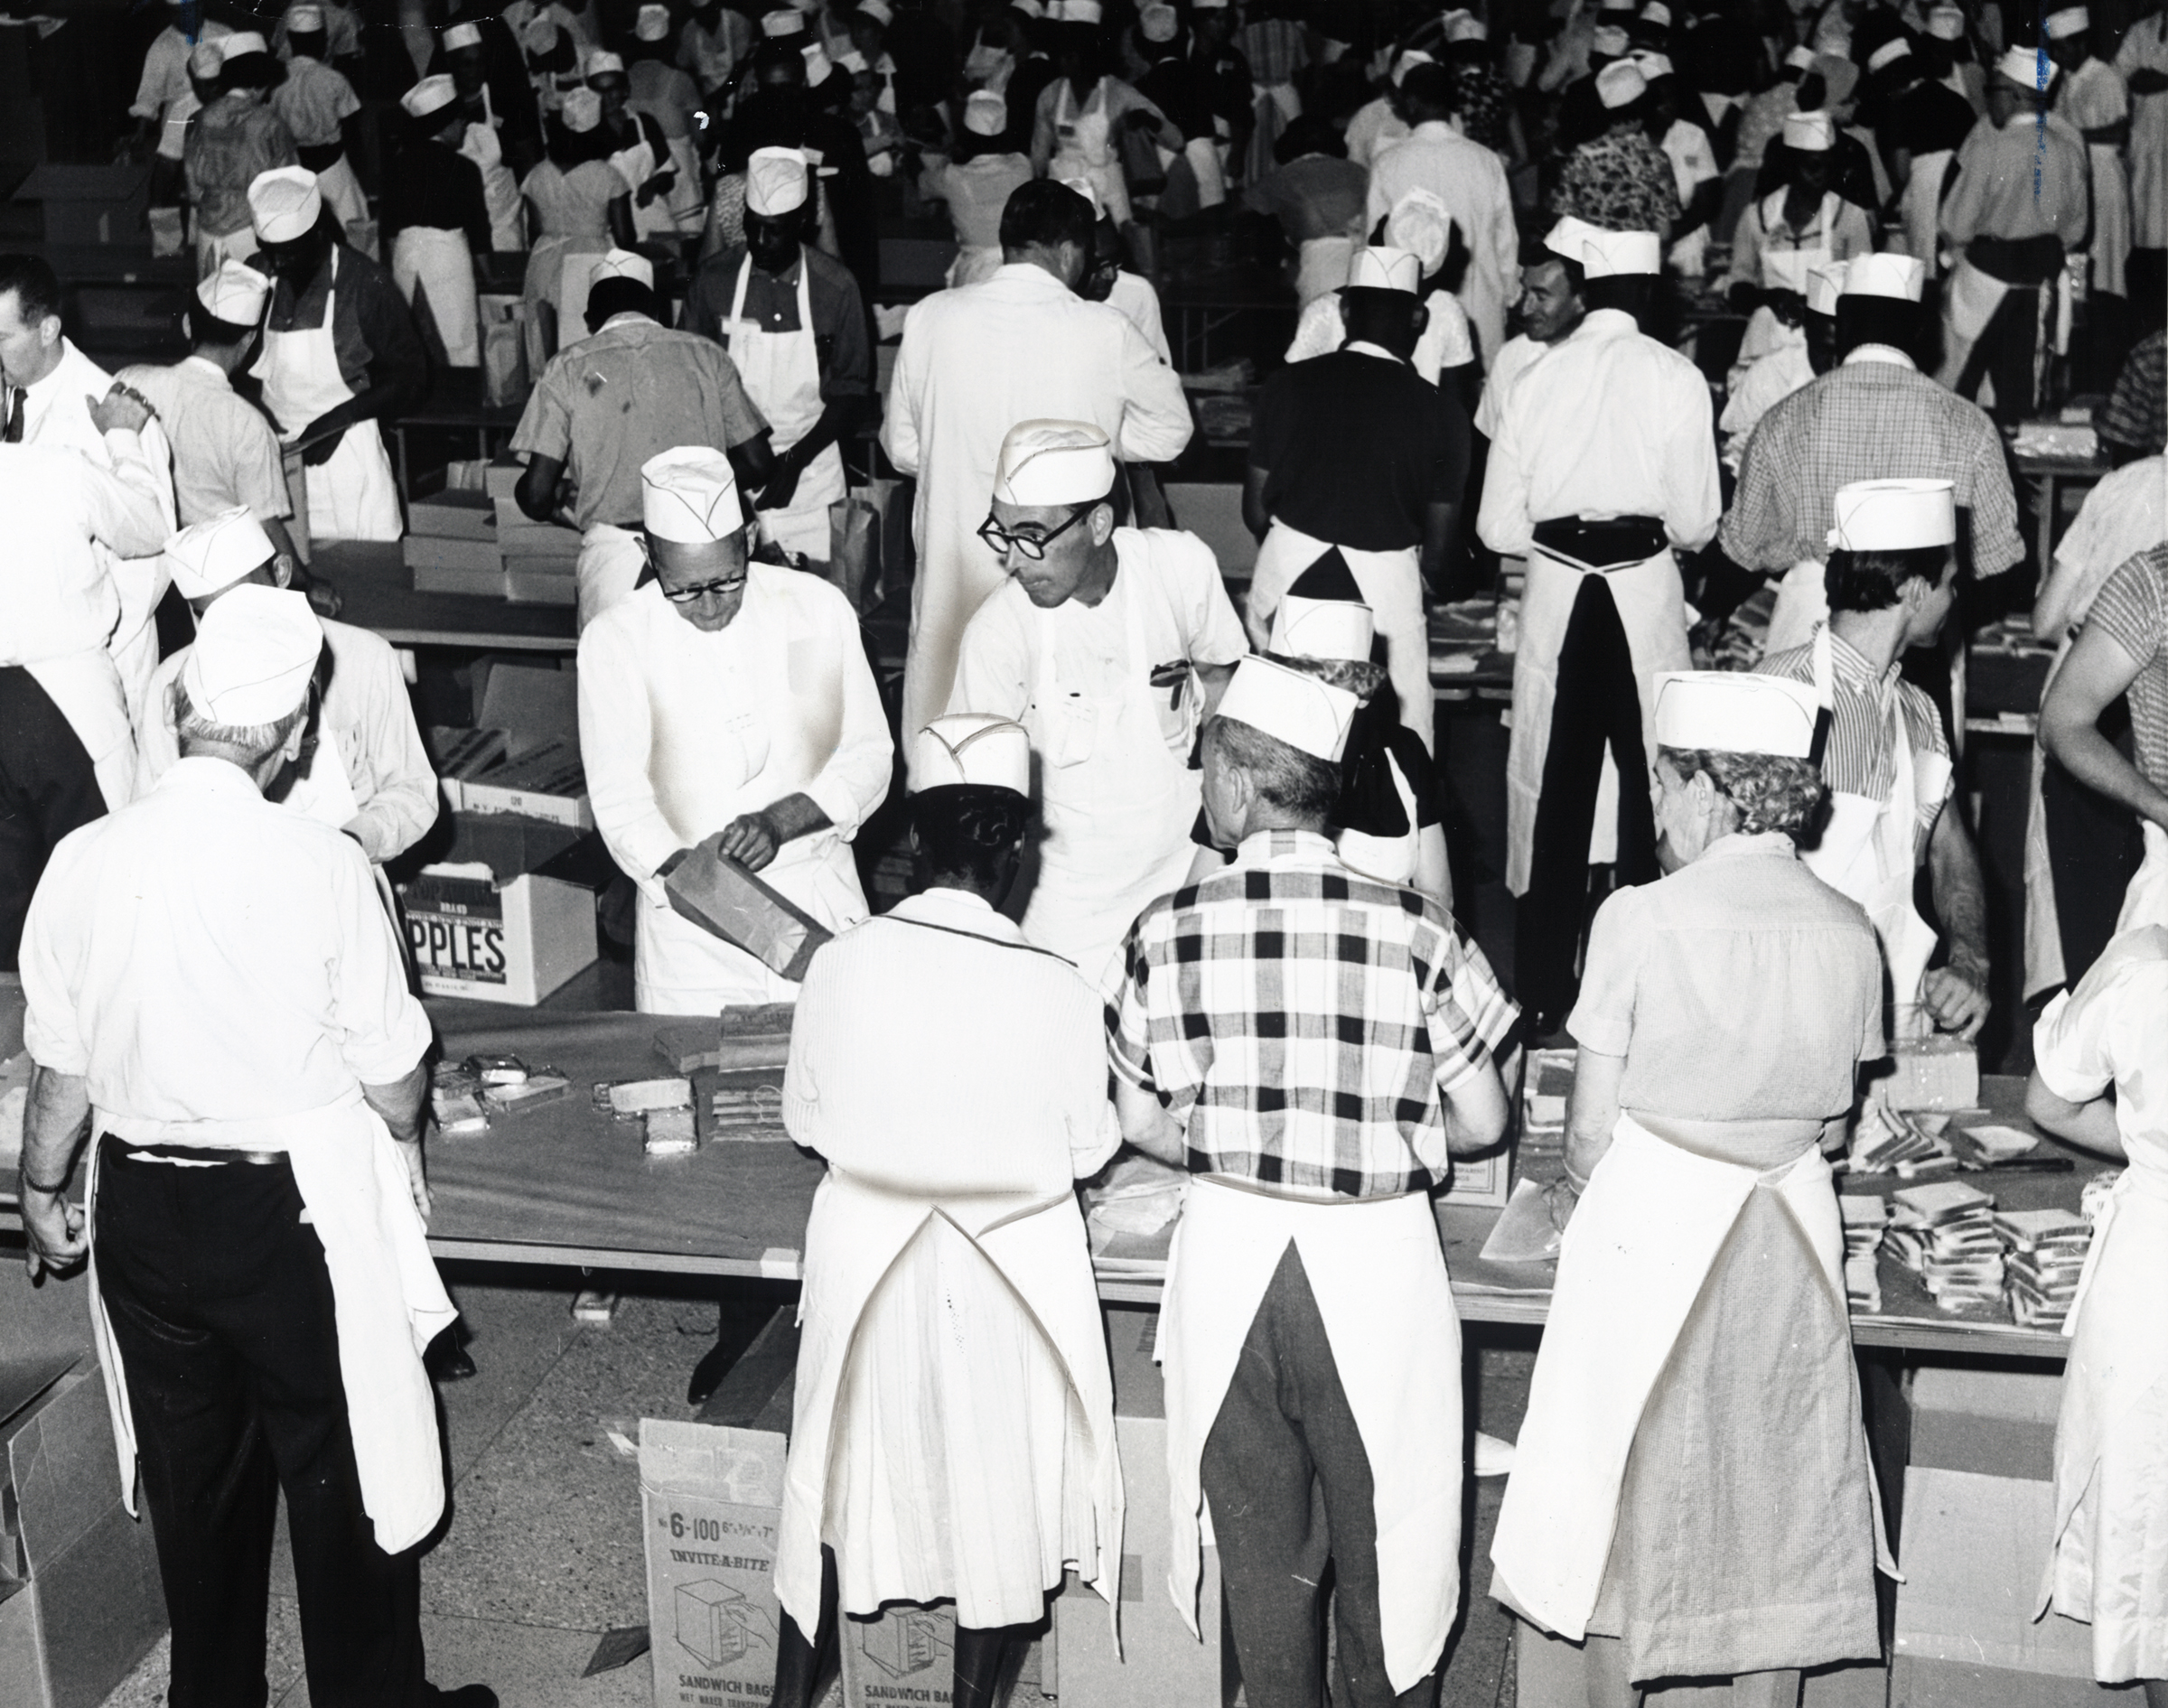 Members of the sandwich brigade assembling sandwiches for the March on Washington, Riverside Church, Harlem, New York, Courtesy of the Library of Congress